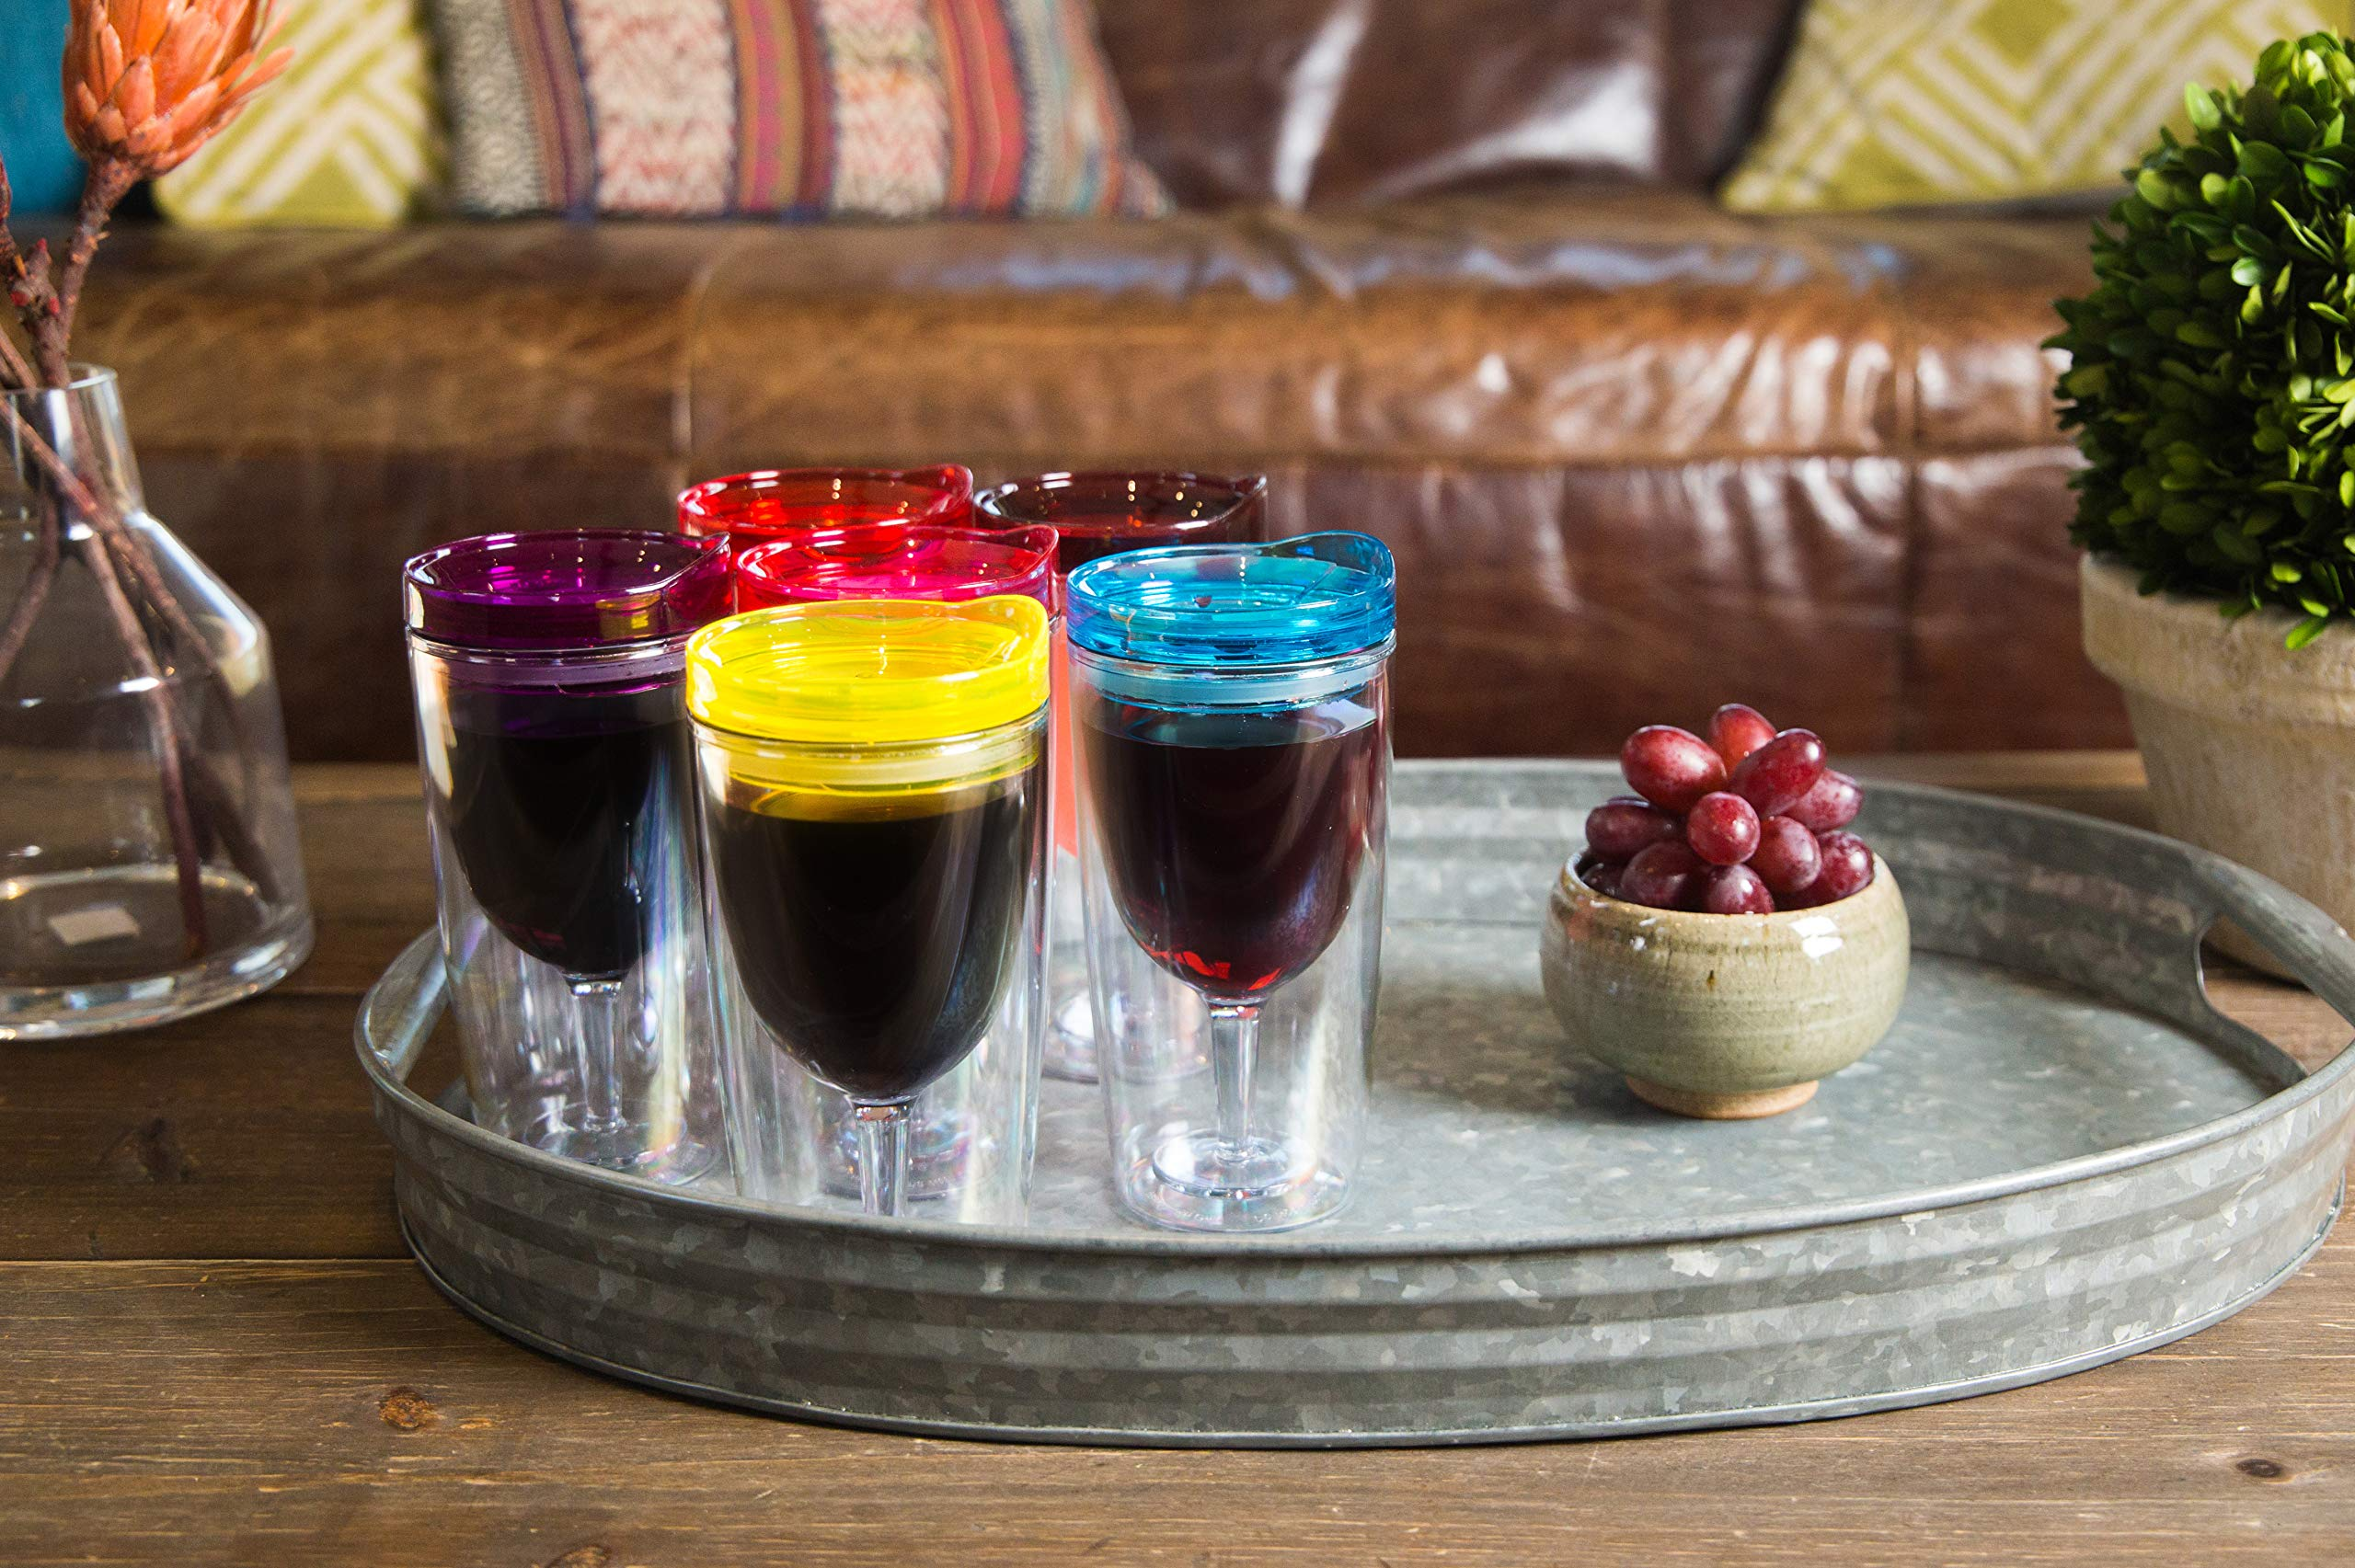 Insulated Wine Tumbler With Lid (SET OF 10) +BONUS Name Decals | Outdoor Acrylic Plastic Wine Glasses | 10oz Cup Tumblers in 10 Colors - Adult Sippy | Unbreakable Stemless Wine Glass by STRATA CUPS (Image #6)